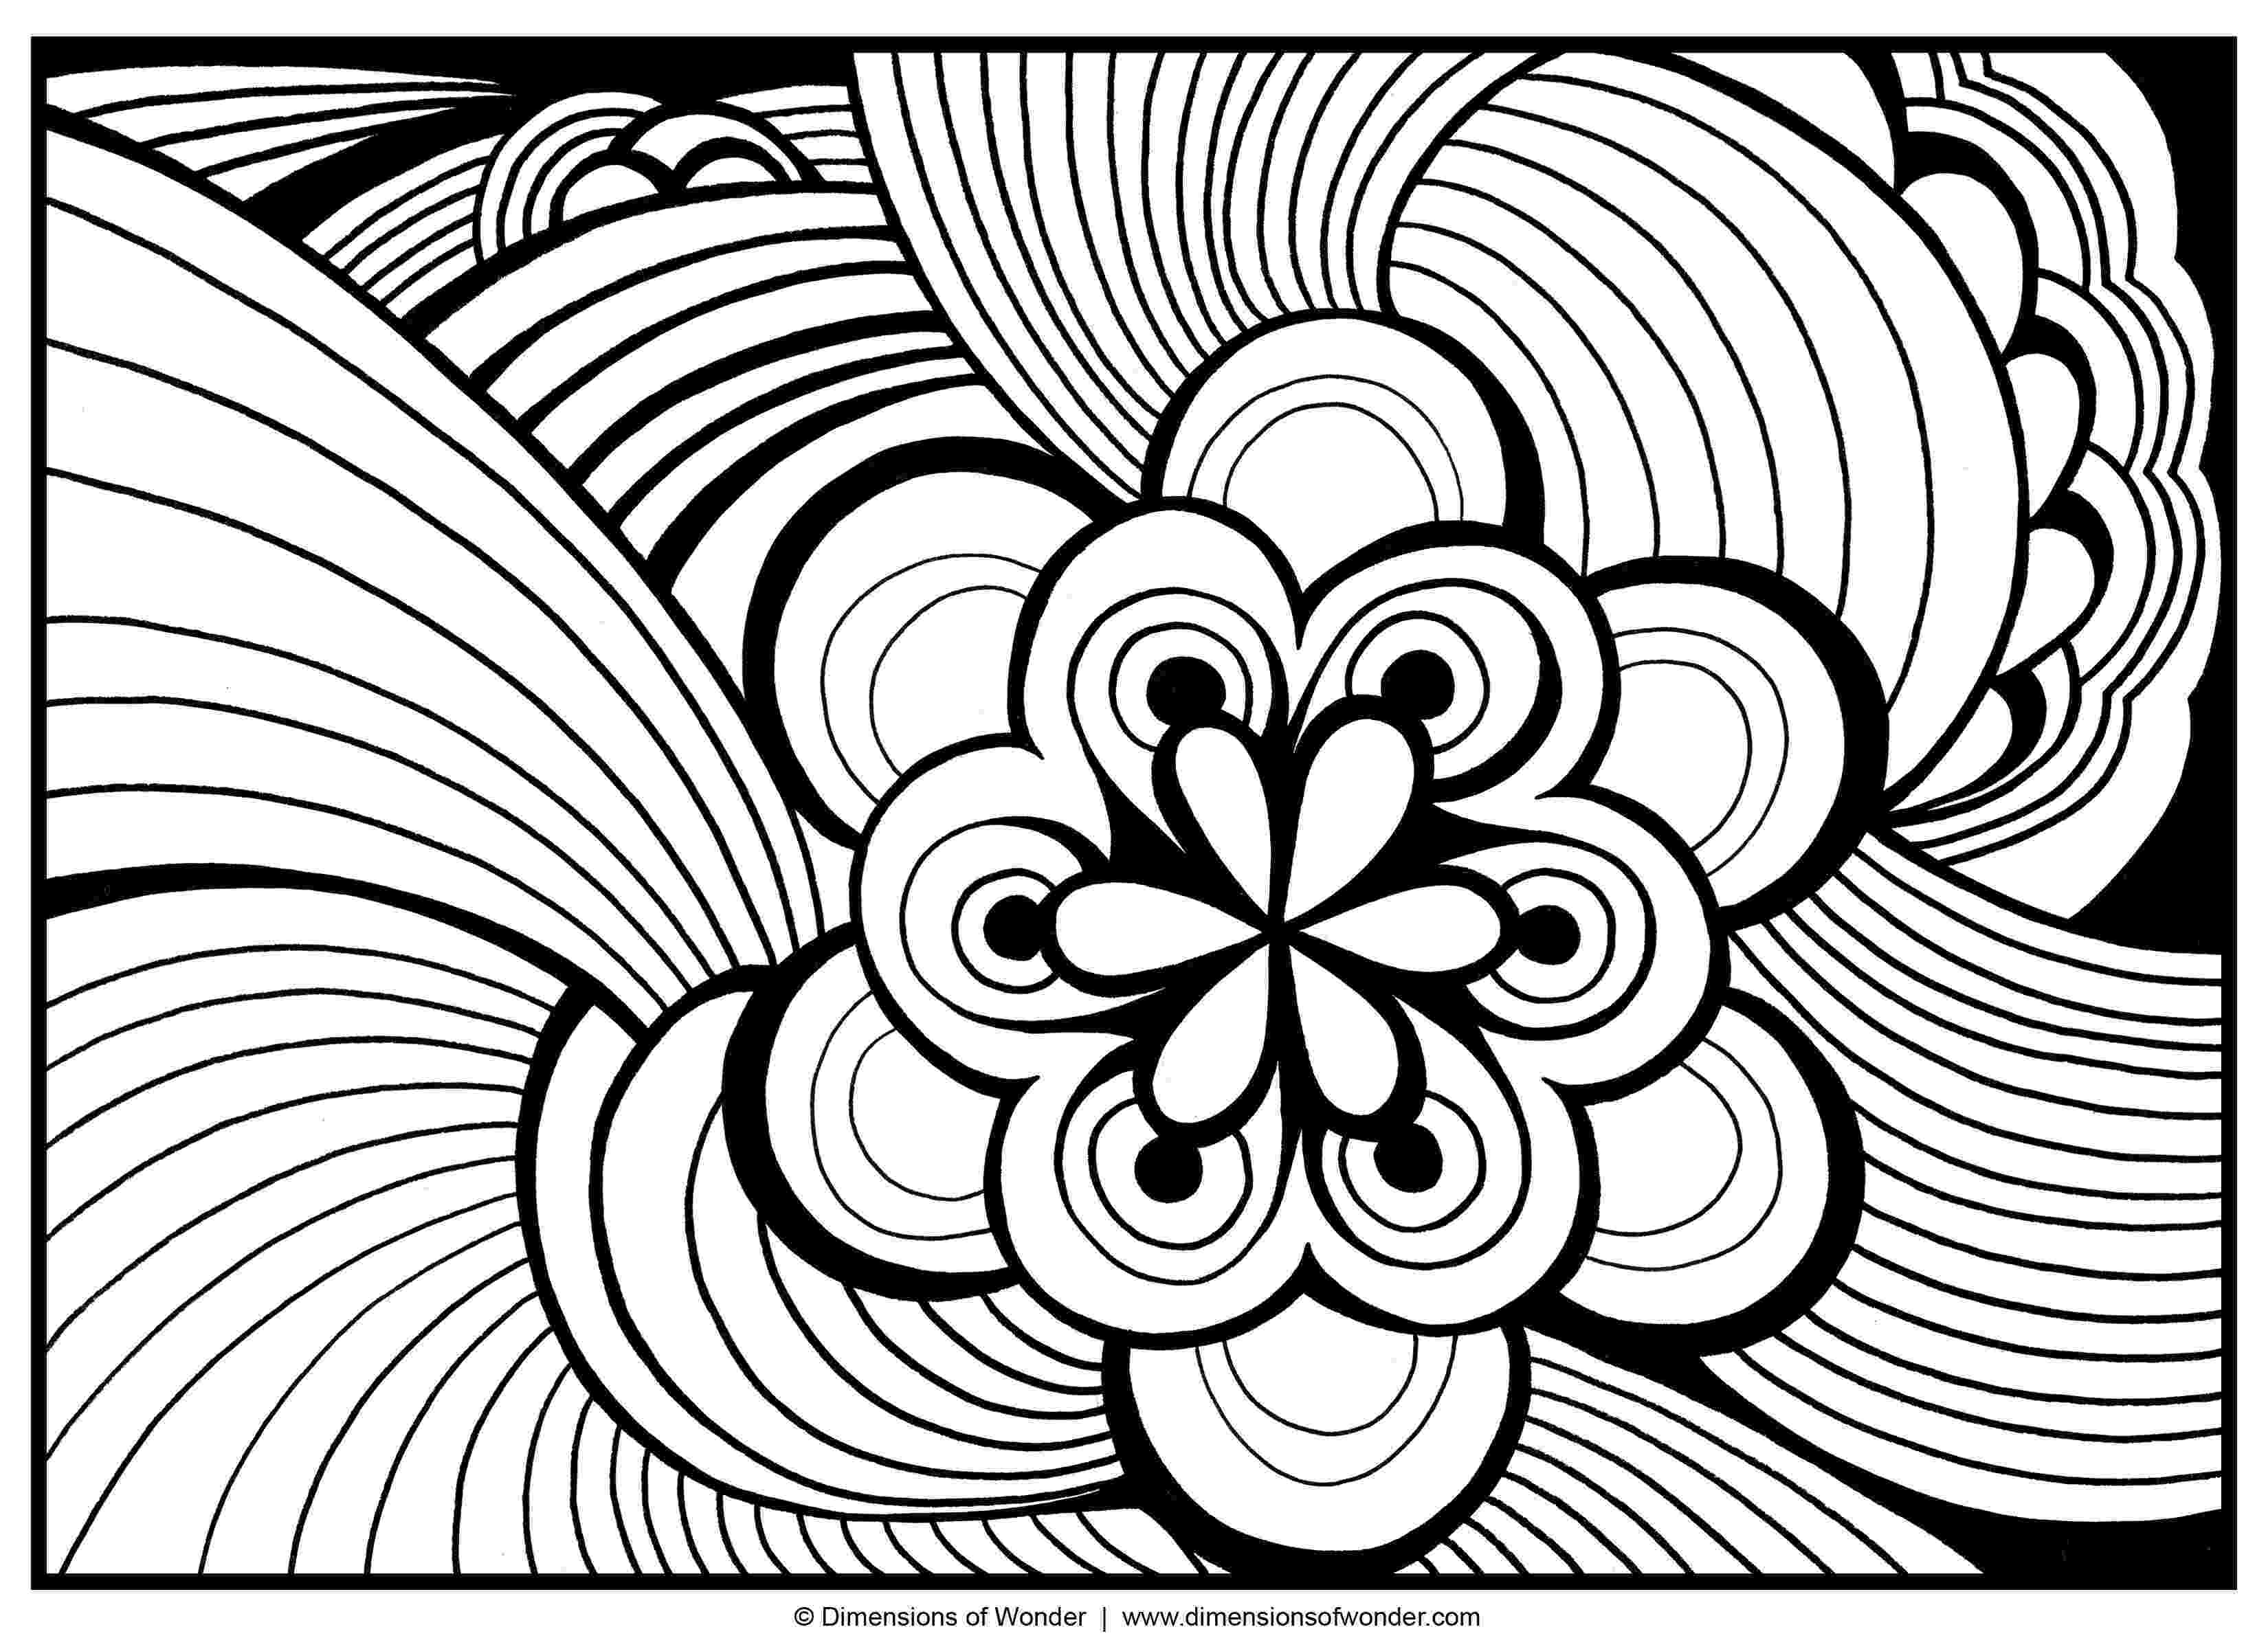 coloring pages for adults free online 20 free adult colouring pages the organised housewife coloring for adults online free pages